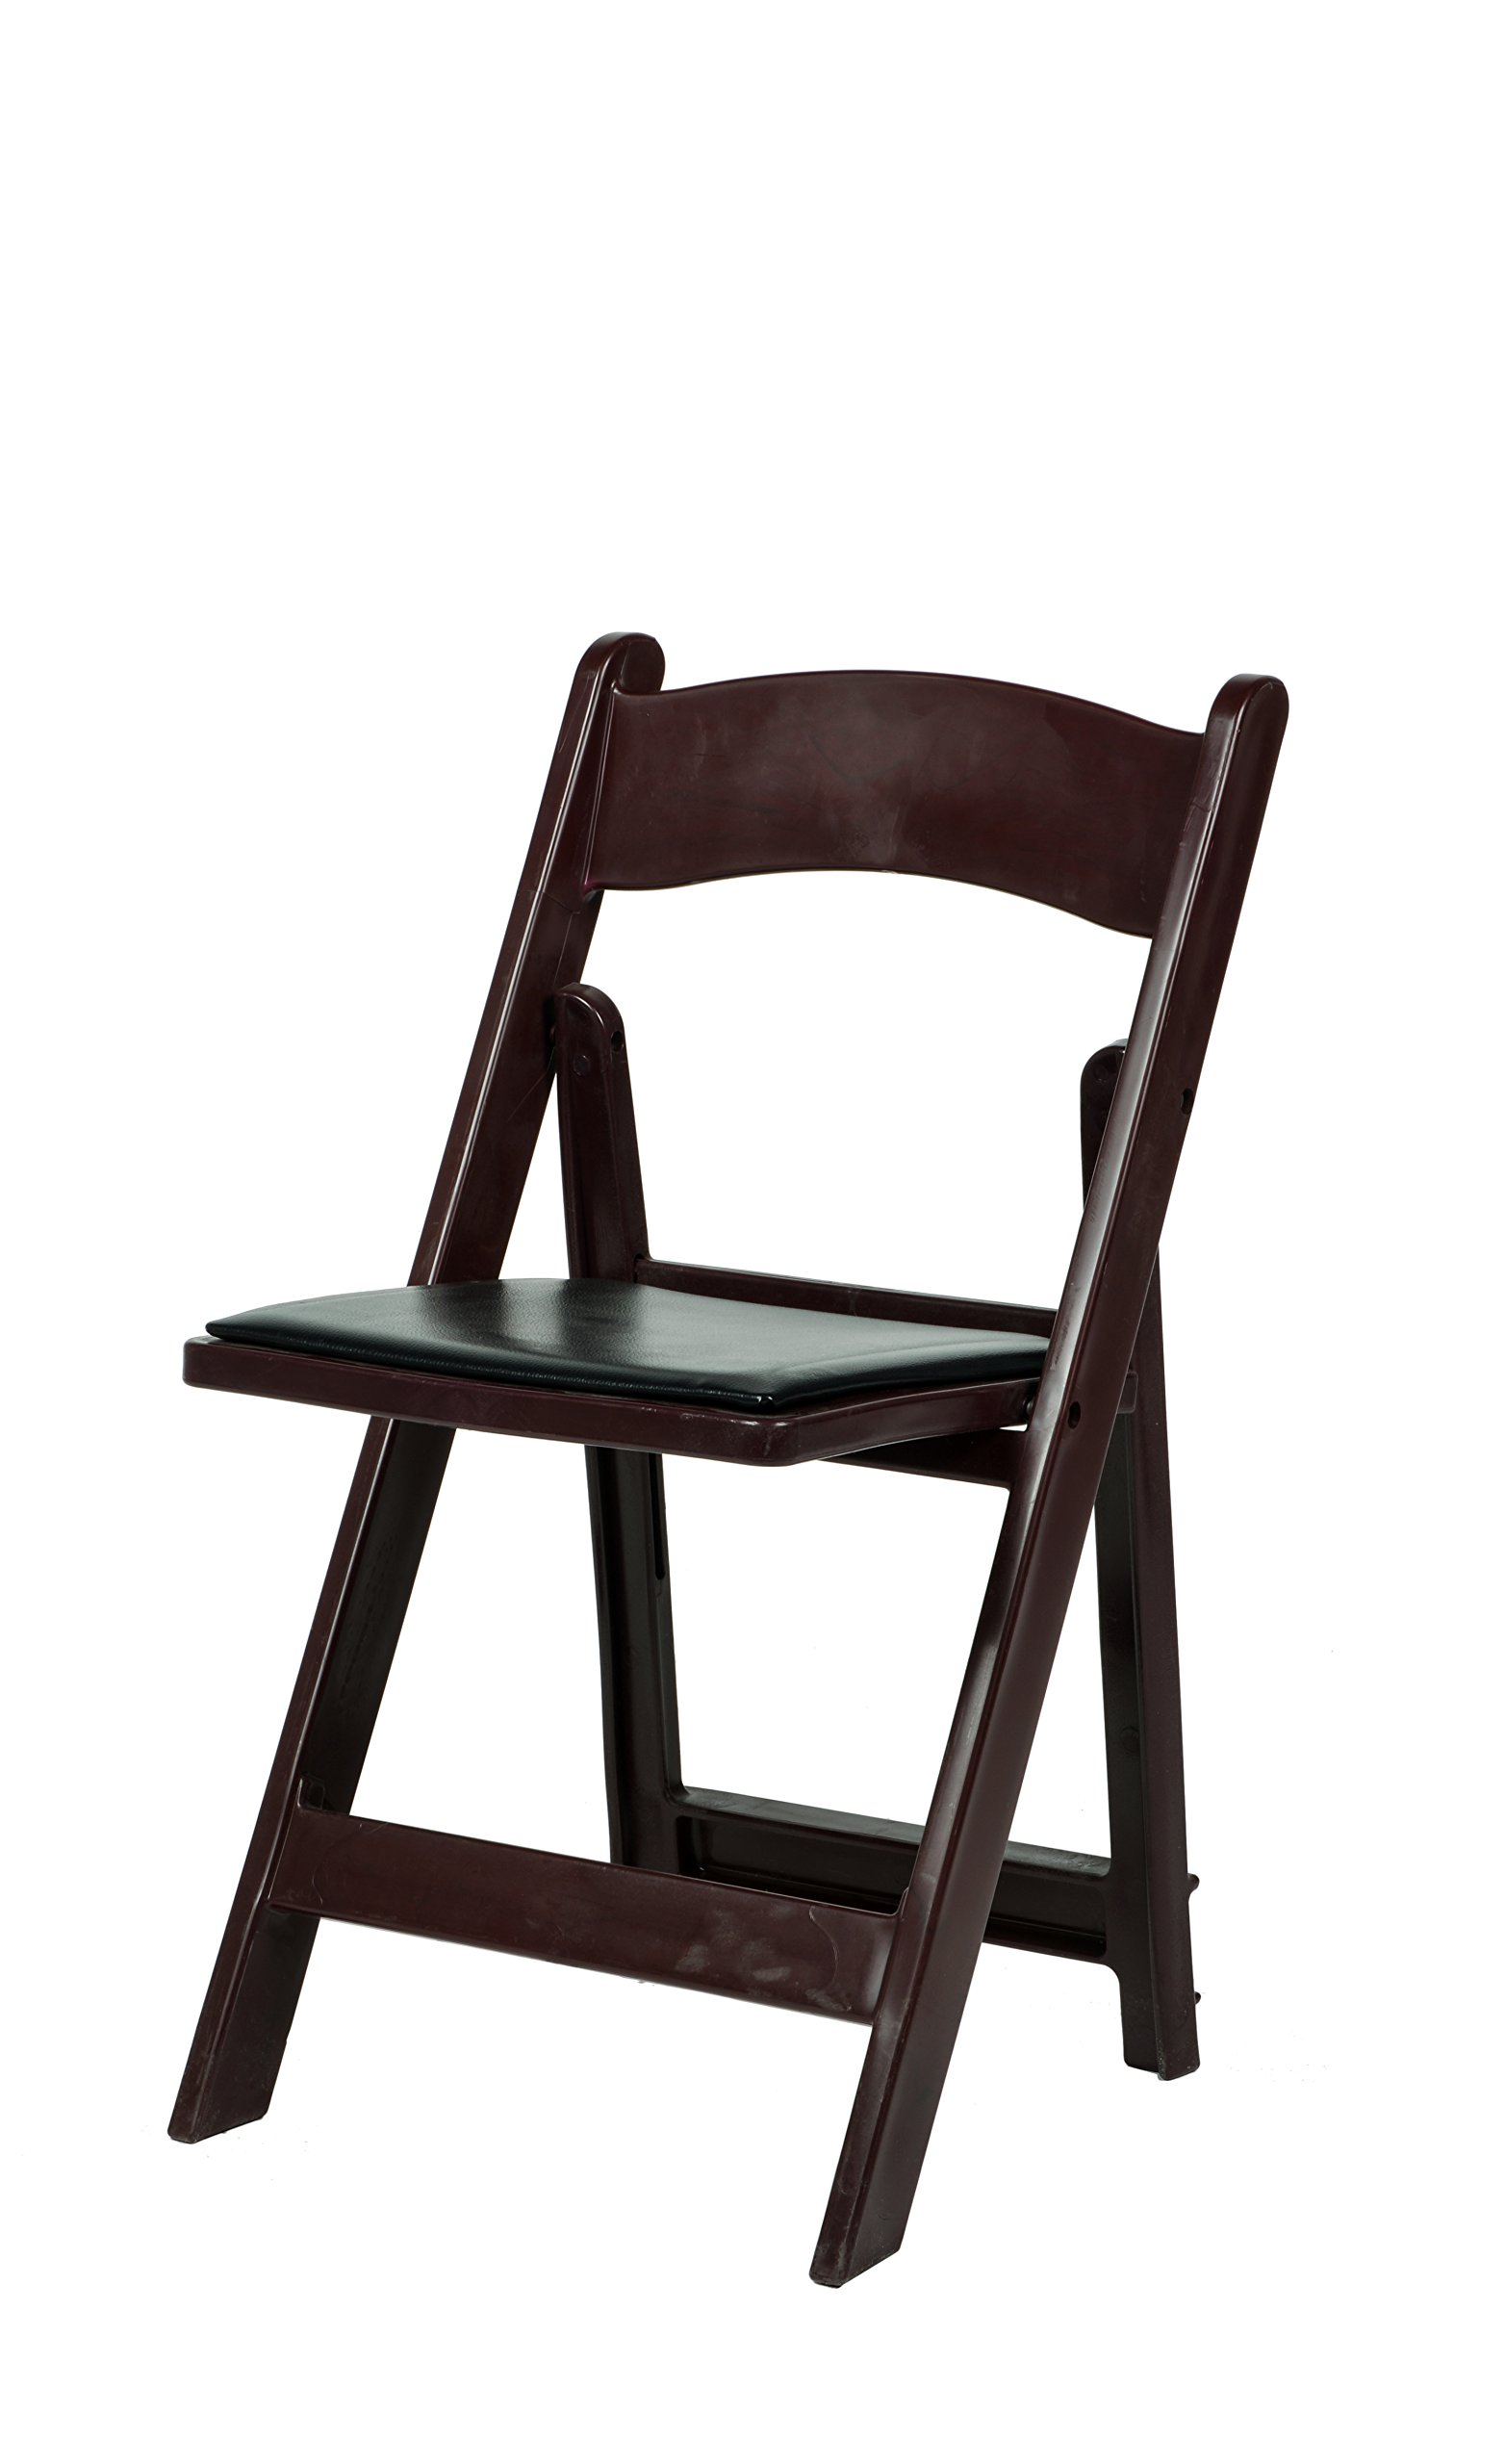 Commercial Seating Products R-101-RM MAX Red Mahogany Resin Folding Chair,